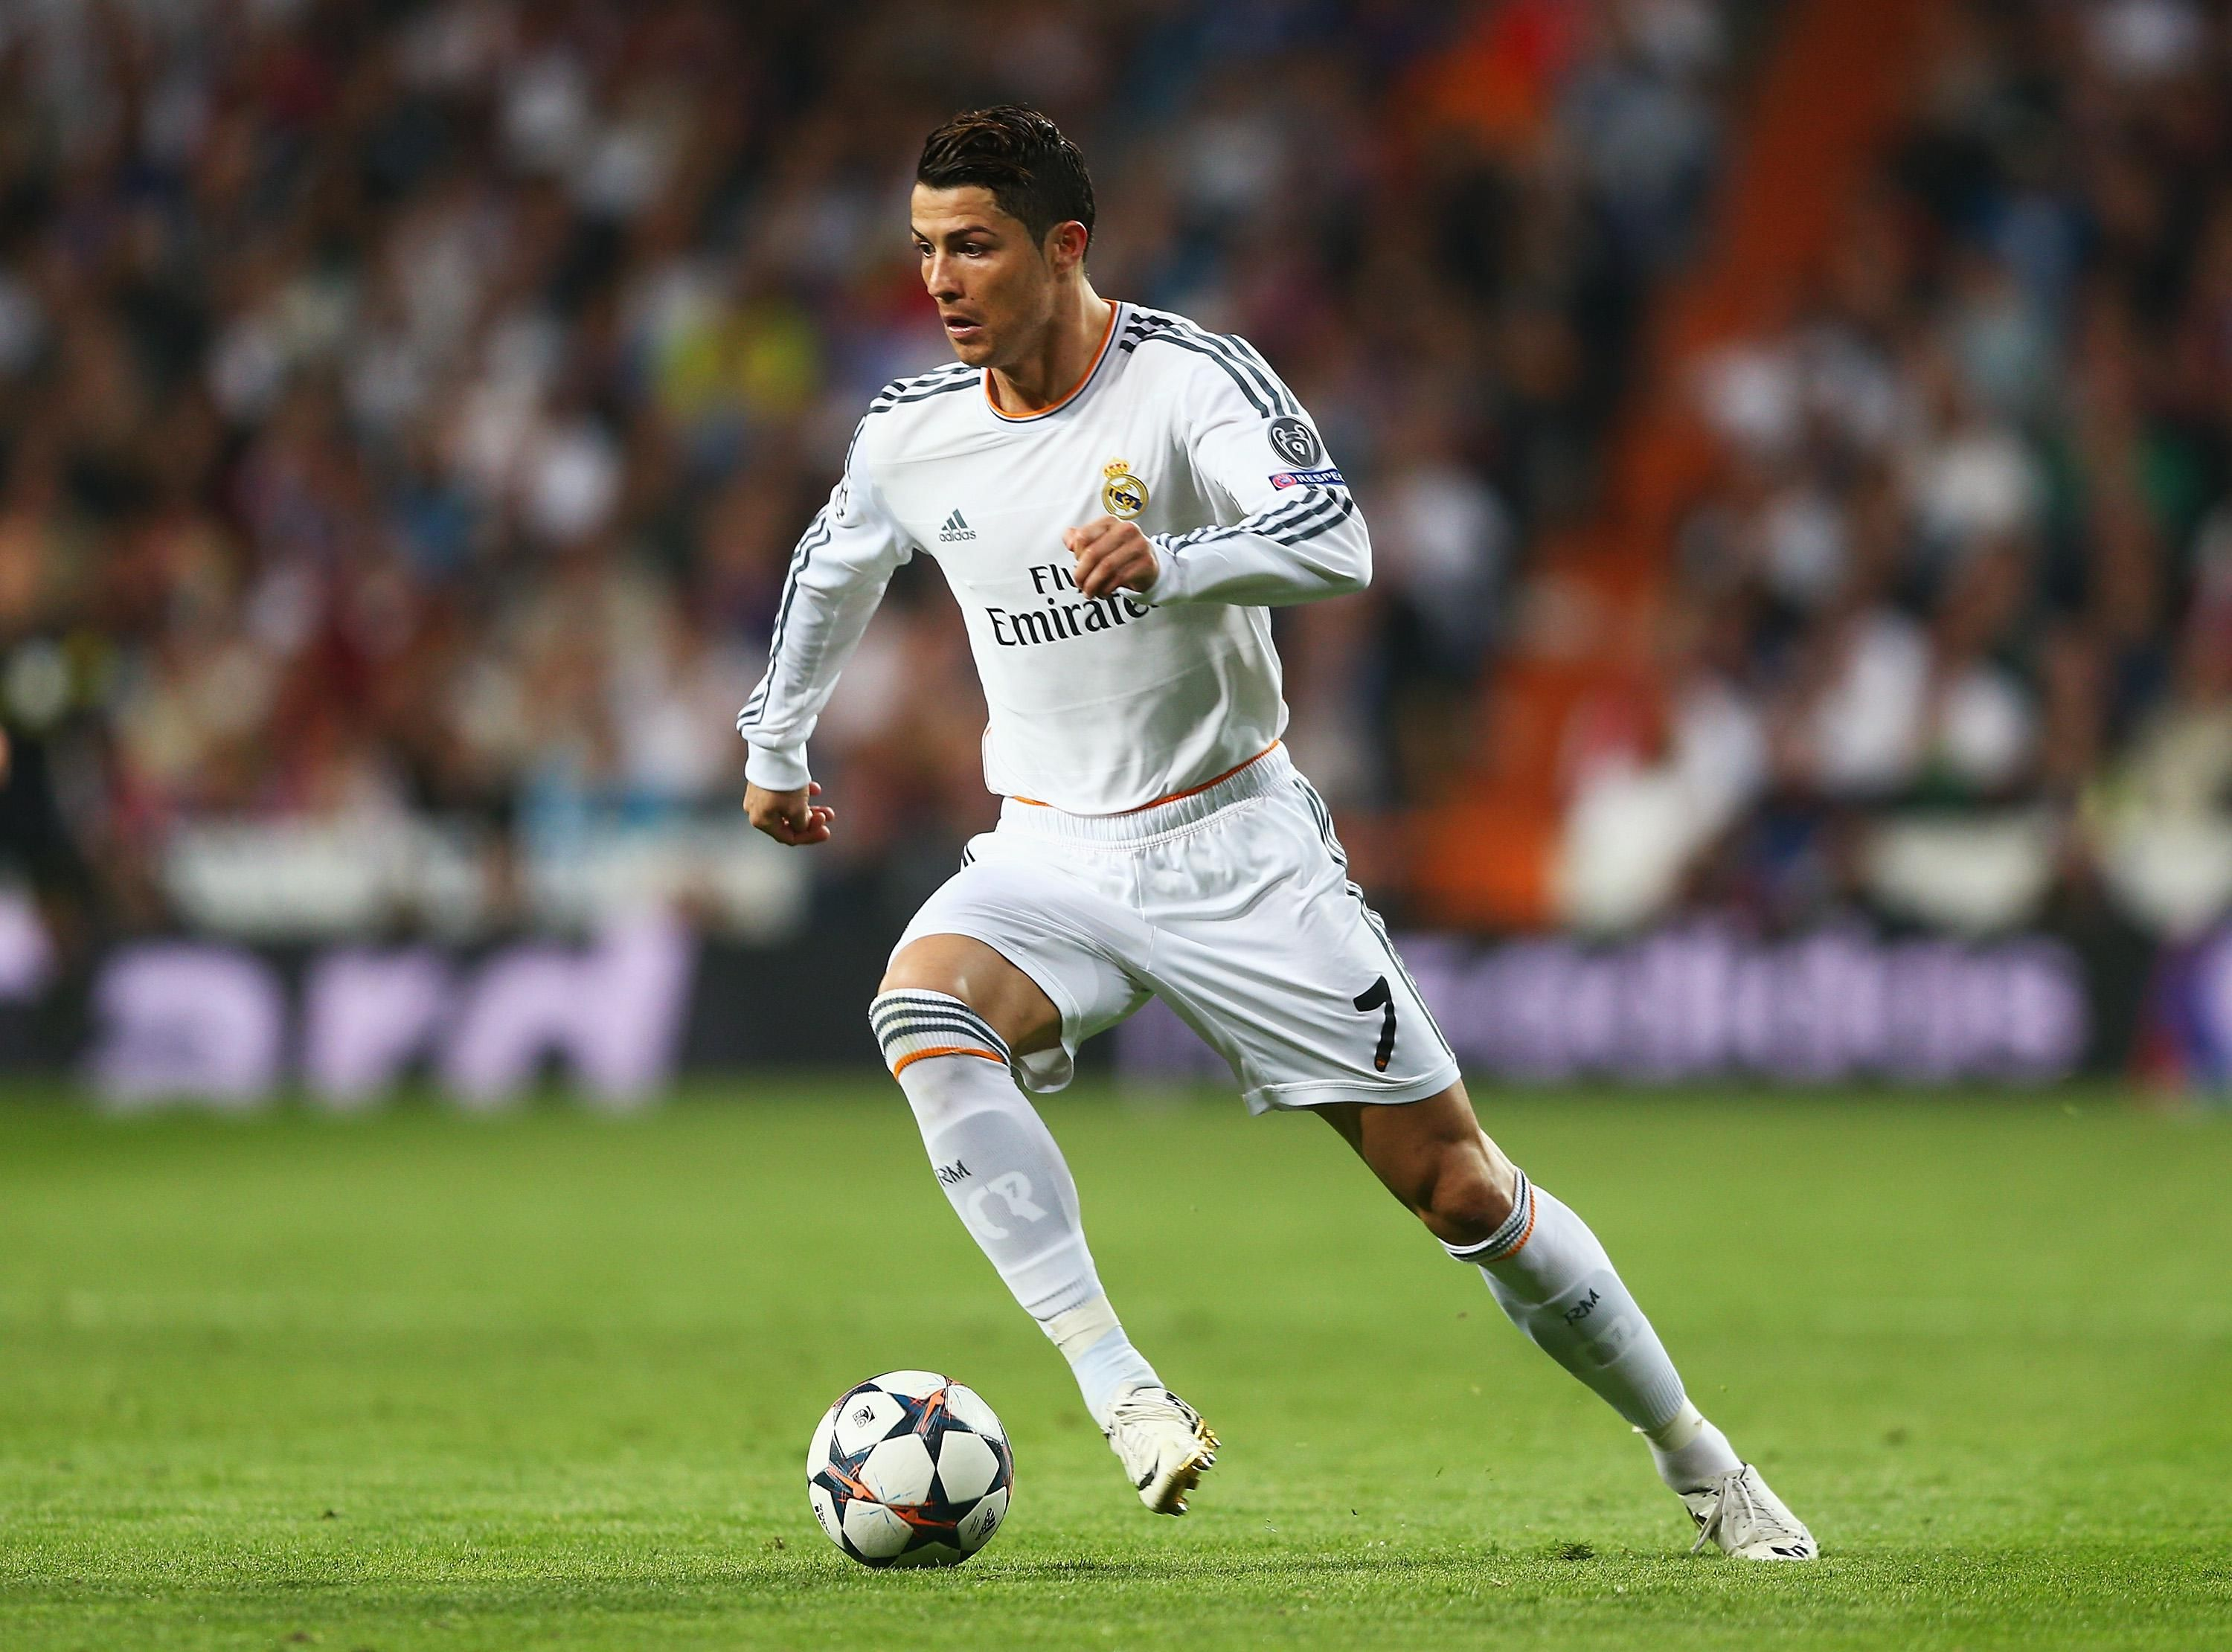 cristiano ronaldo free kick wallpapers full hd on high resolution